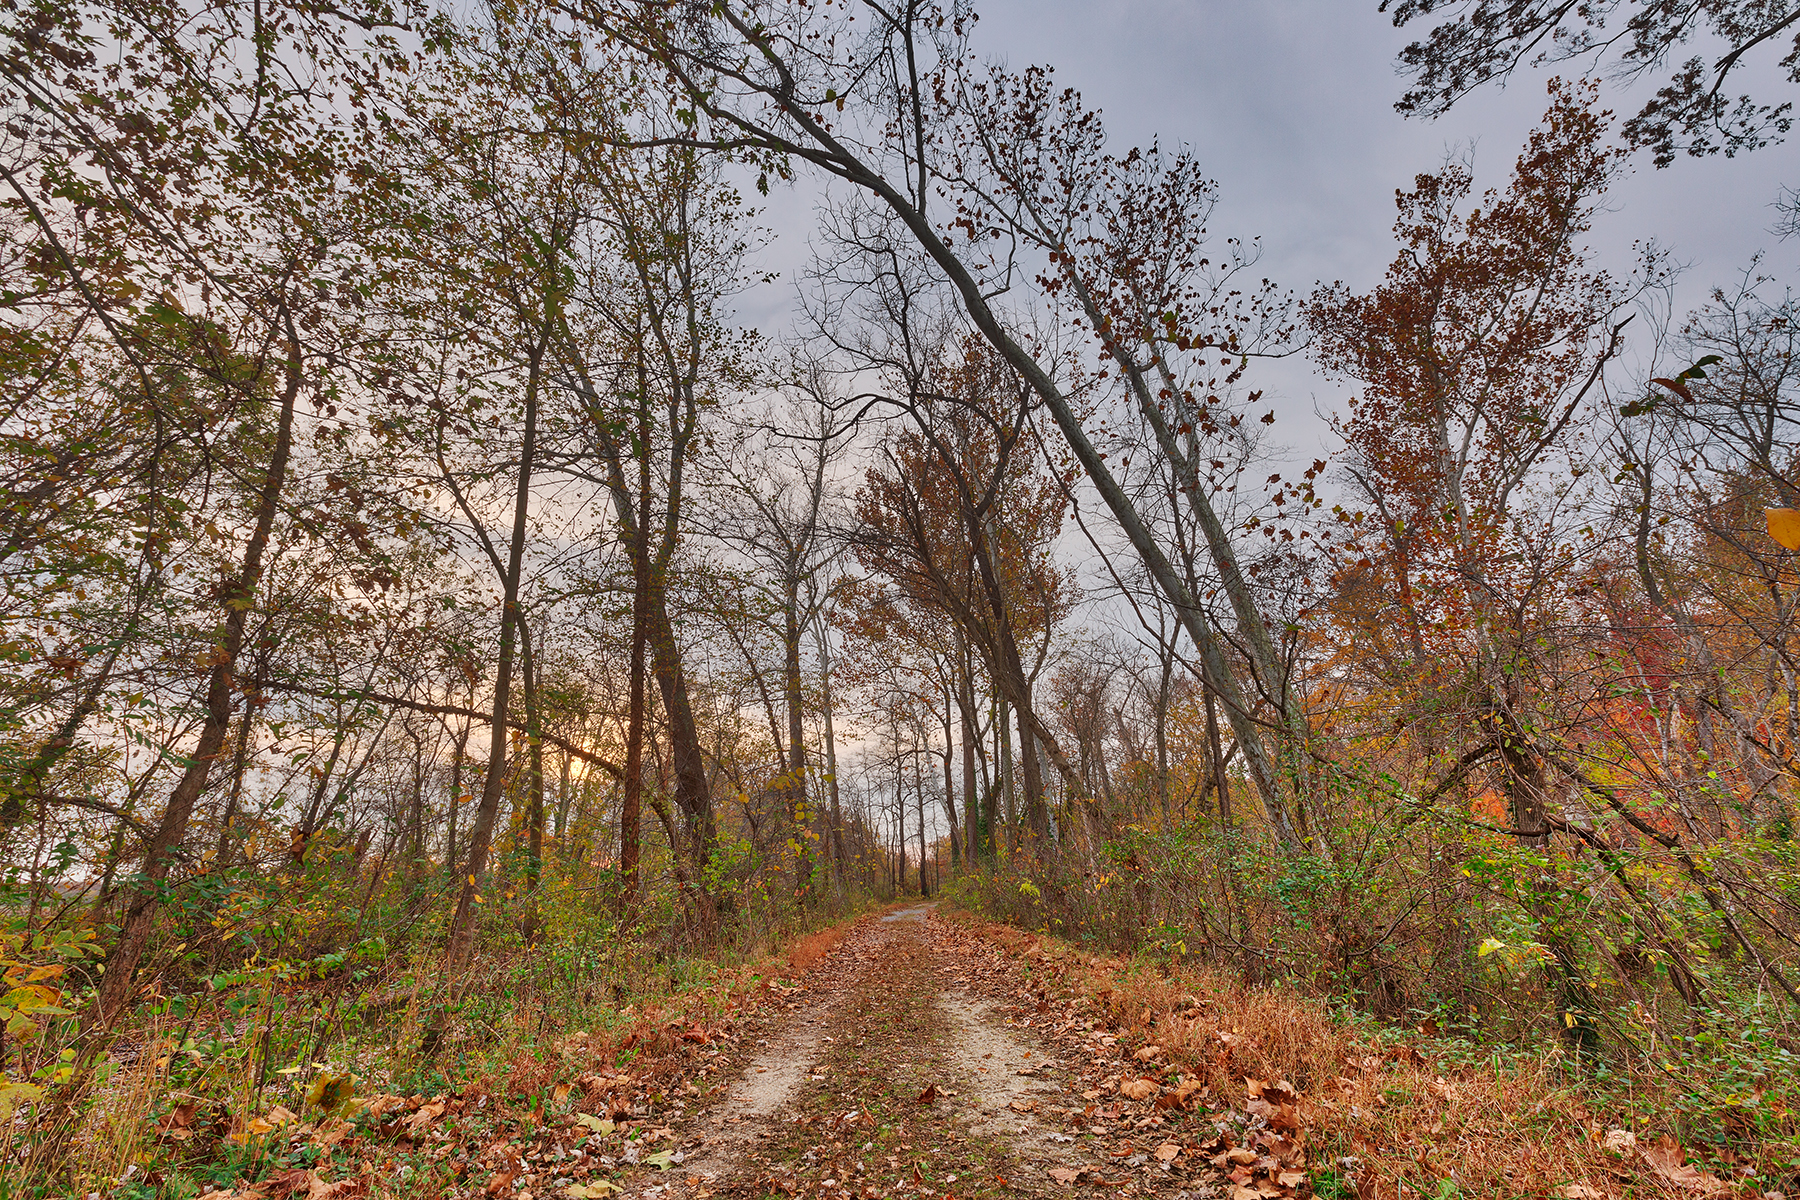 Cloudy autumn sunset trail - hdr photo